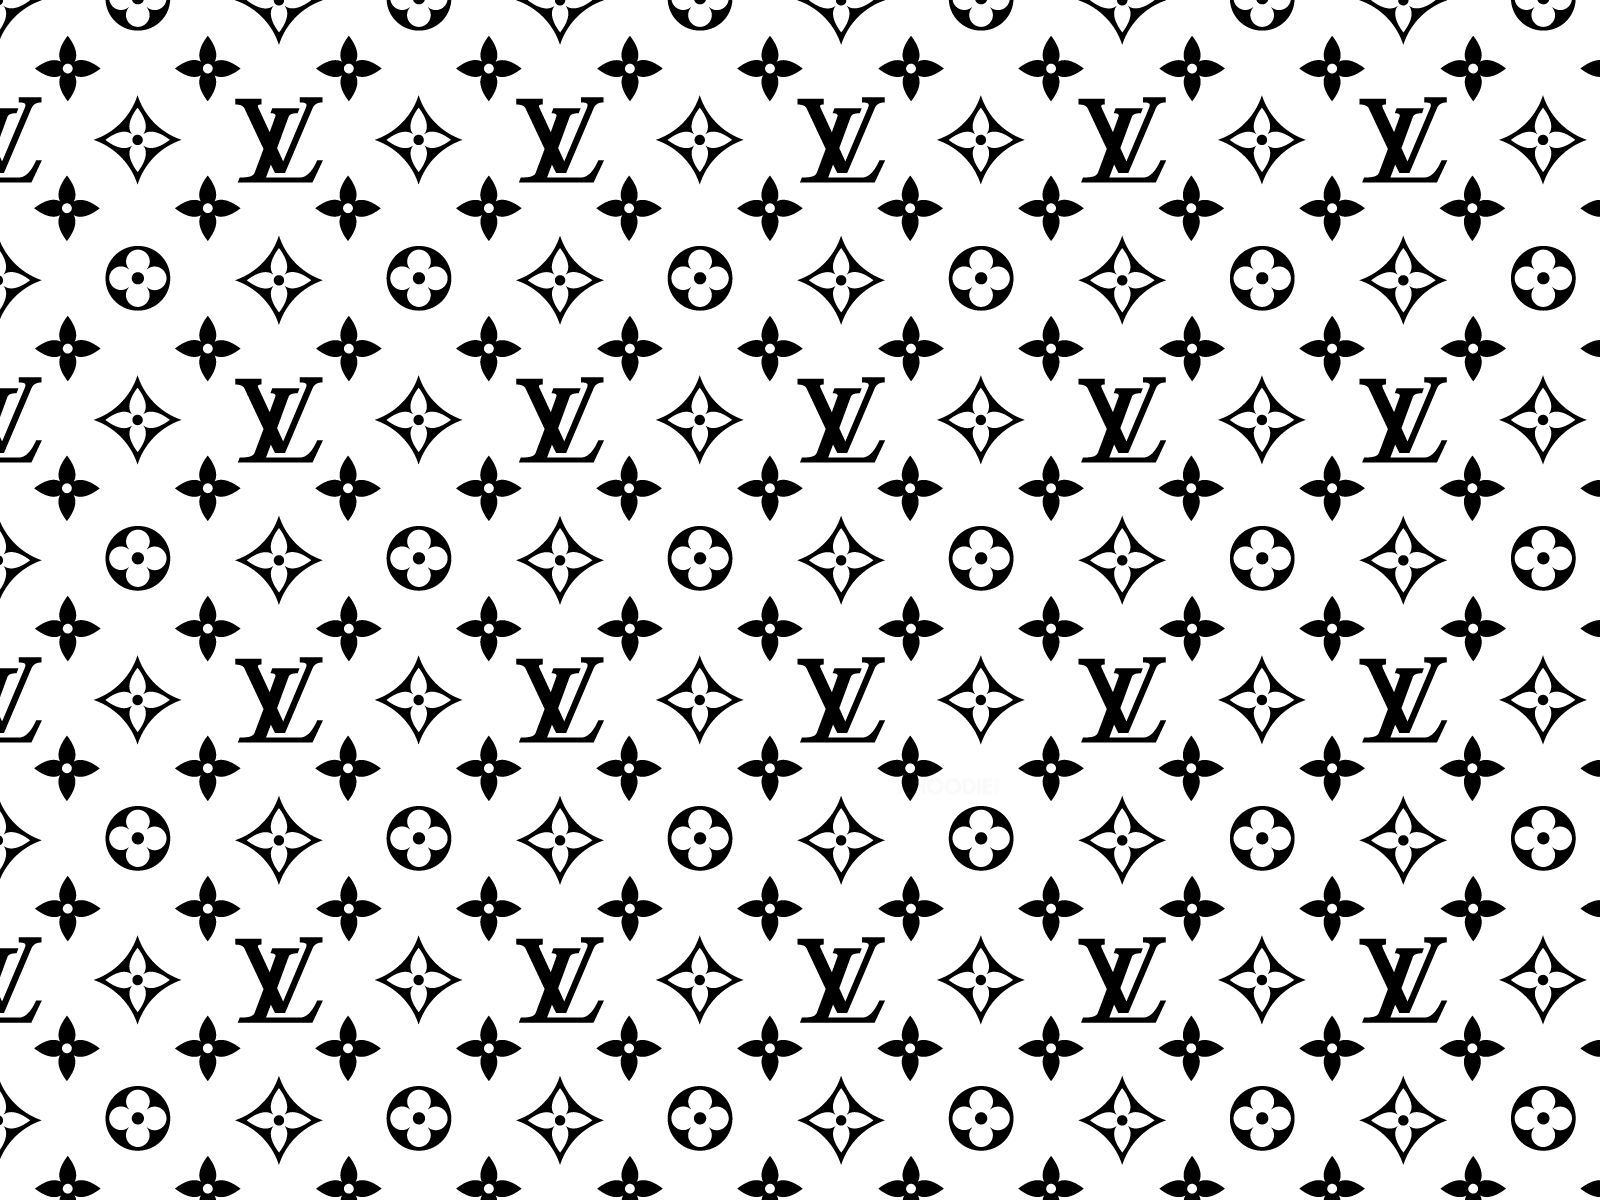 Louis Vuitton iPhone s wallpaper  phone wallpaper  Pinterest 1600x1200